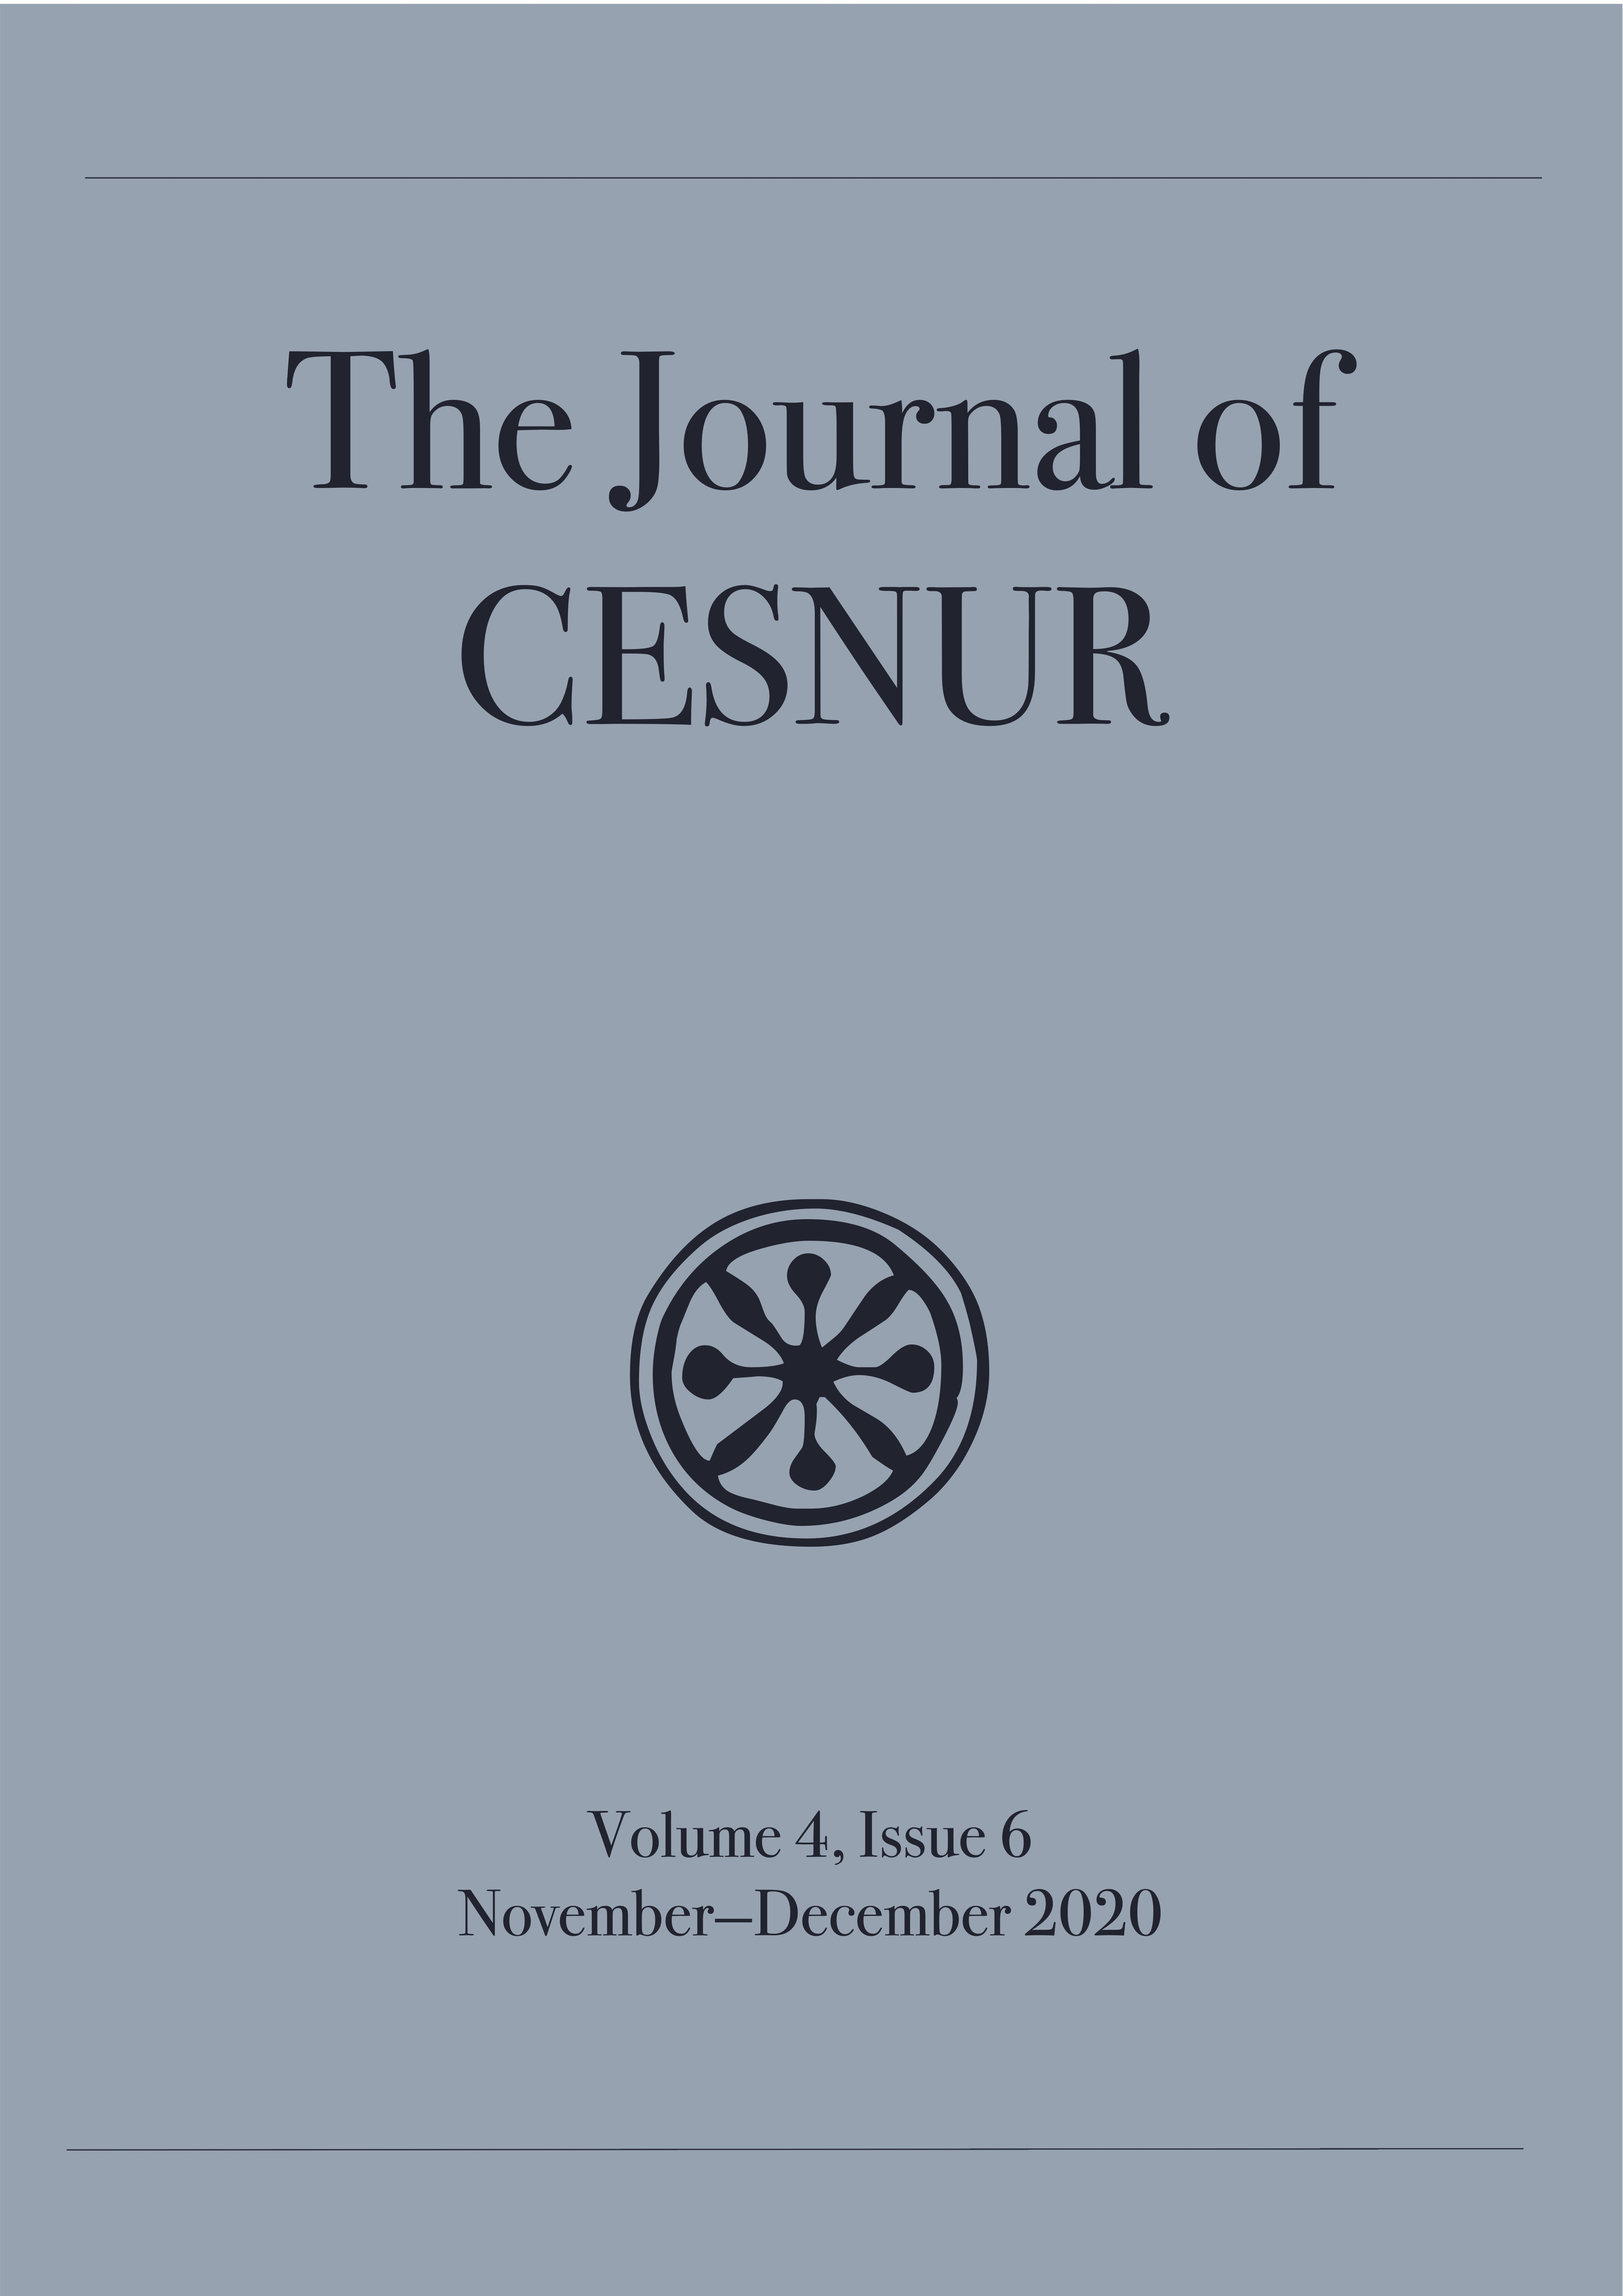 The Journal of Cesnur Volume 4 Issue 6 cover